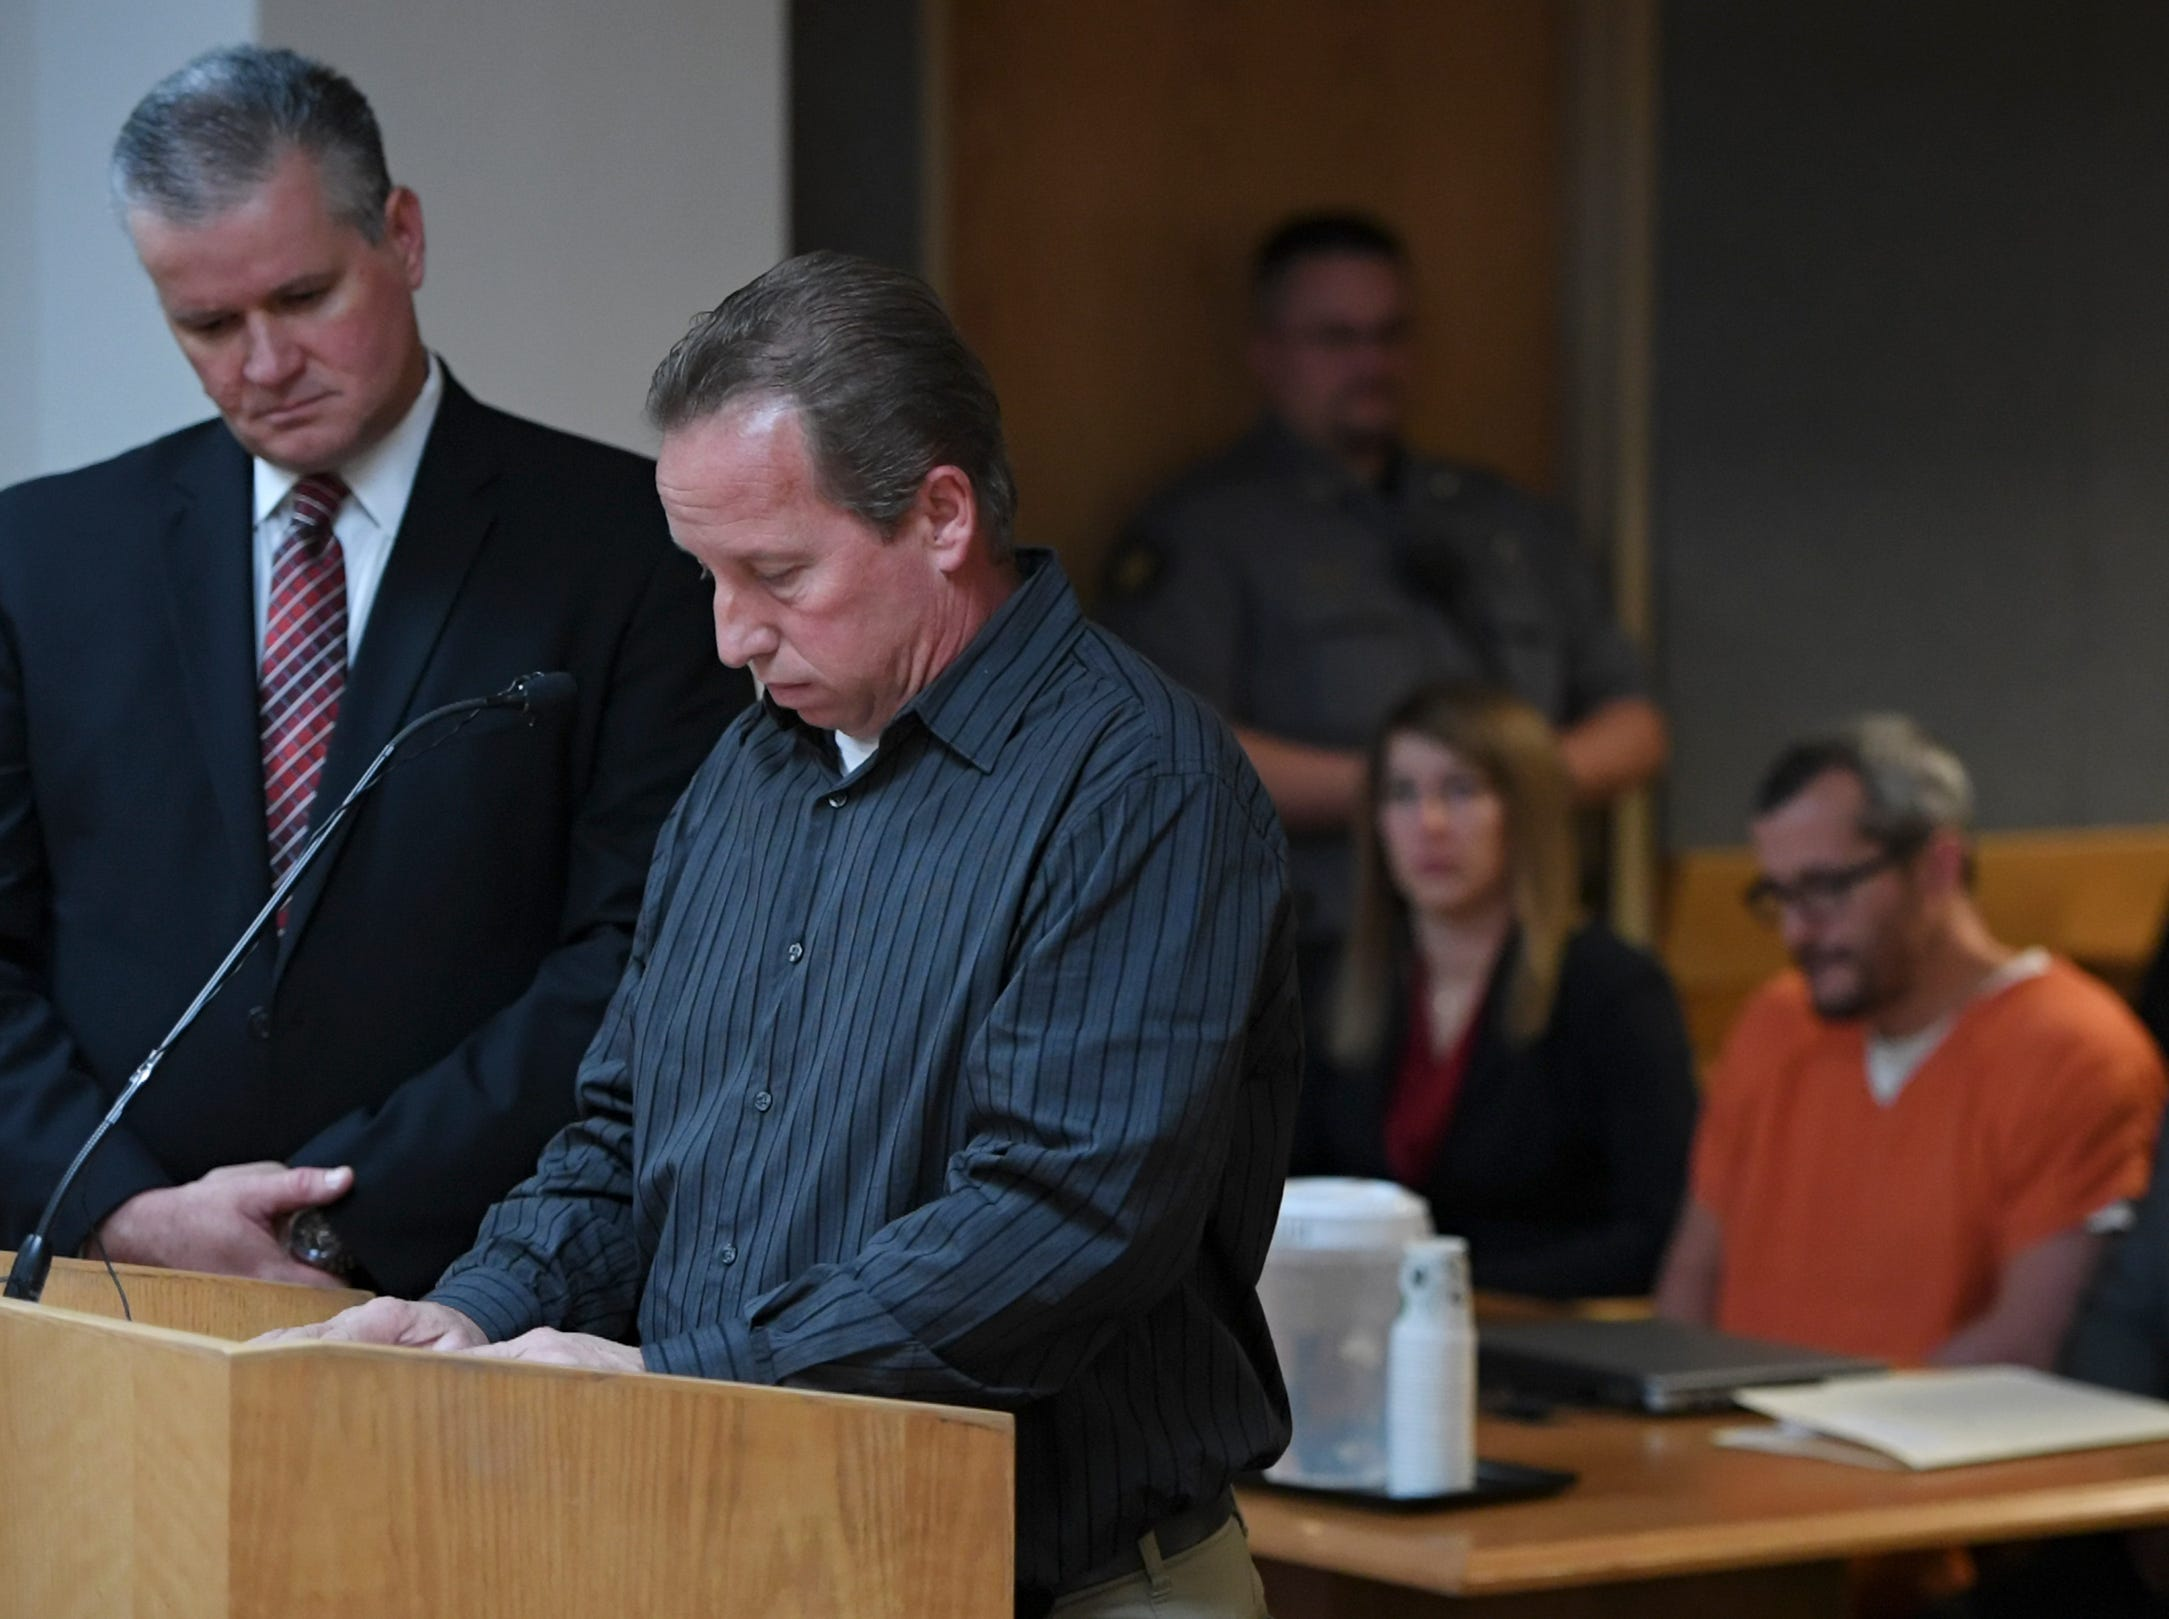 GREELEY CO - NOVEMBER 19: Michael J. Rourke, Weld County District Attorney, left, stands with Frank Rzucek, the father of Shanann Watts, as he reads a statement during court at the Weld County Courthouse on November 19, 2018 in Greeley, Colorado. Christopher Watts was sentenced to life in prison for murdering his pregnant wife, daughters. (Photo by RJ Sangosti/The Denver Post)